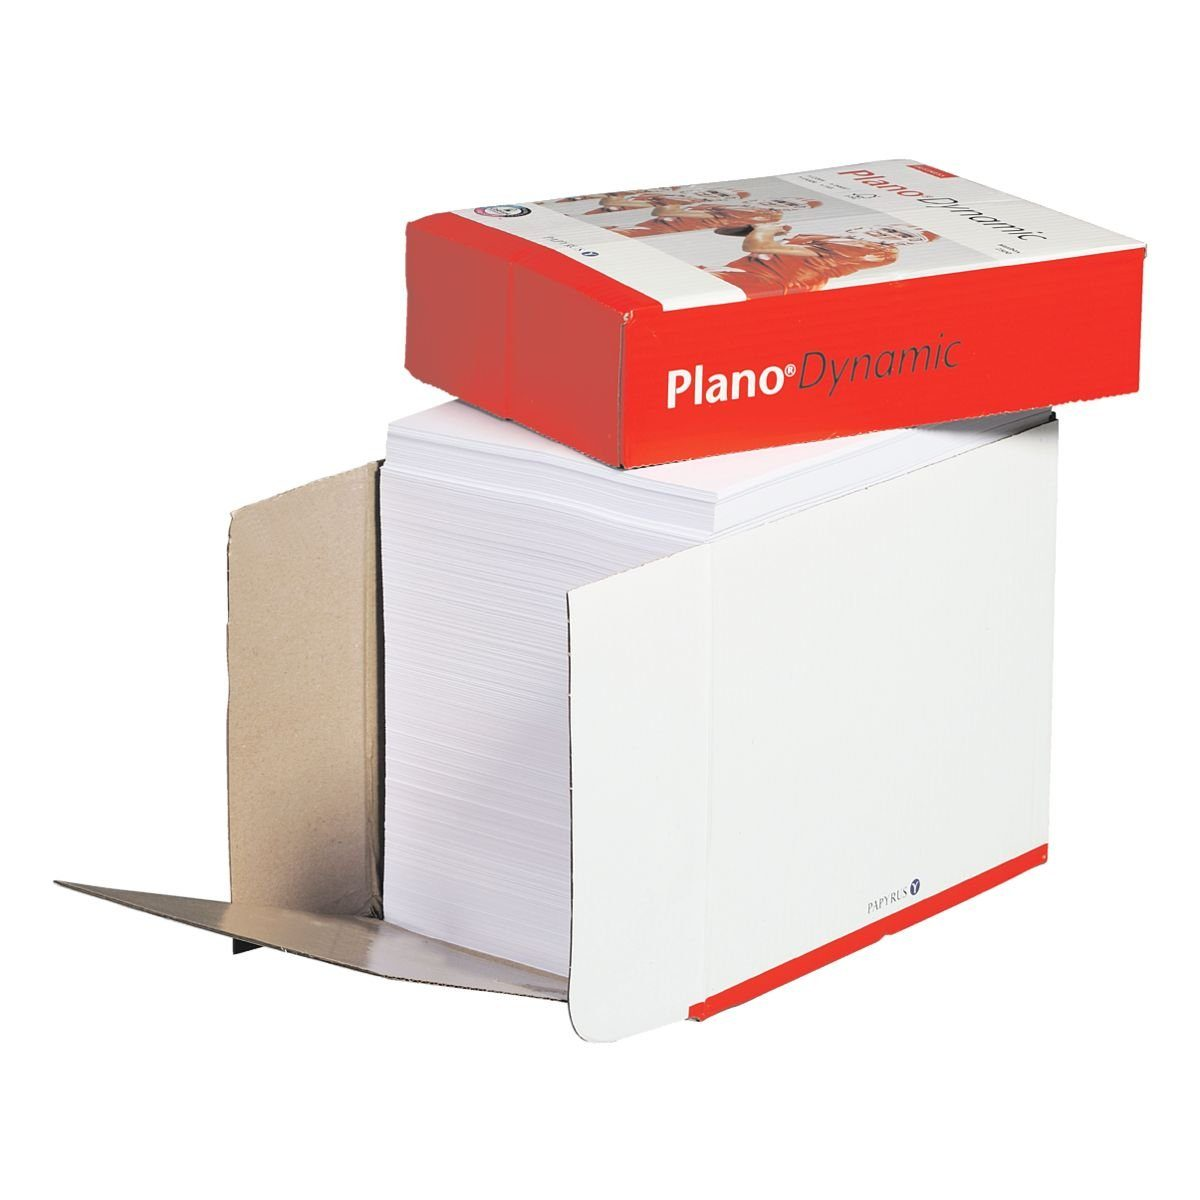 Plano Öko-Box Multifunktionales Druckerpapier »Dynamic«